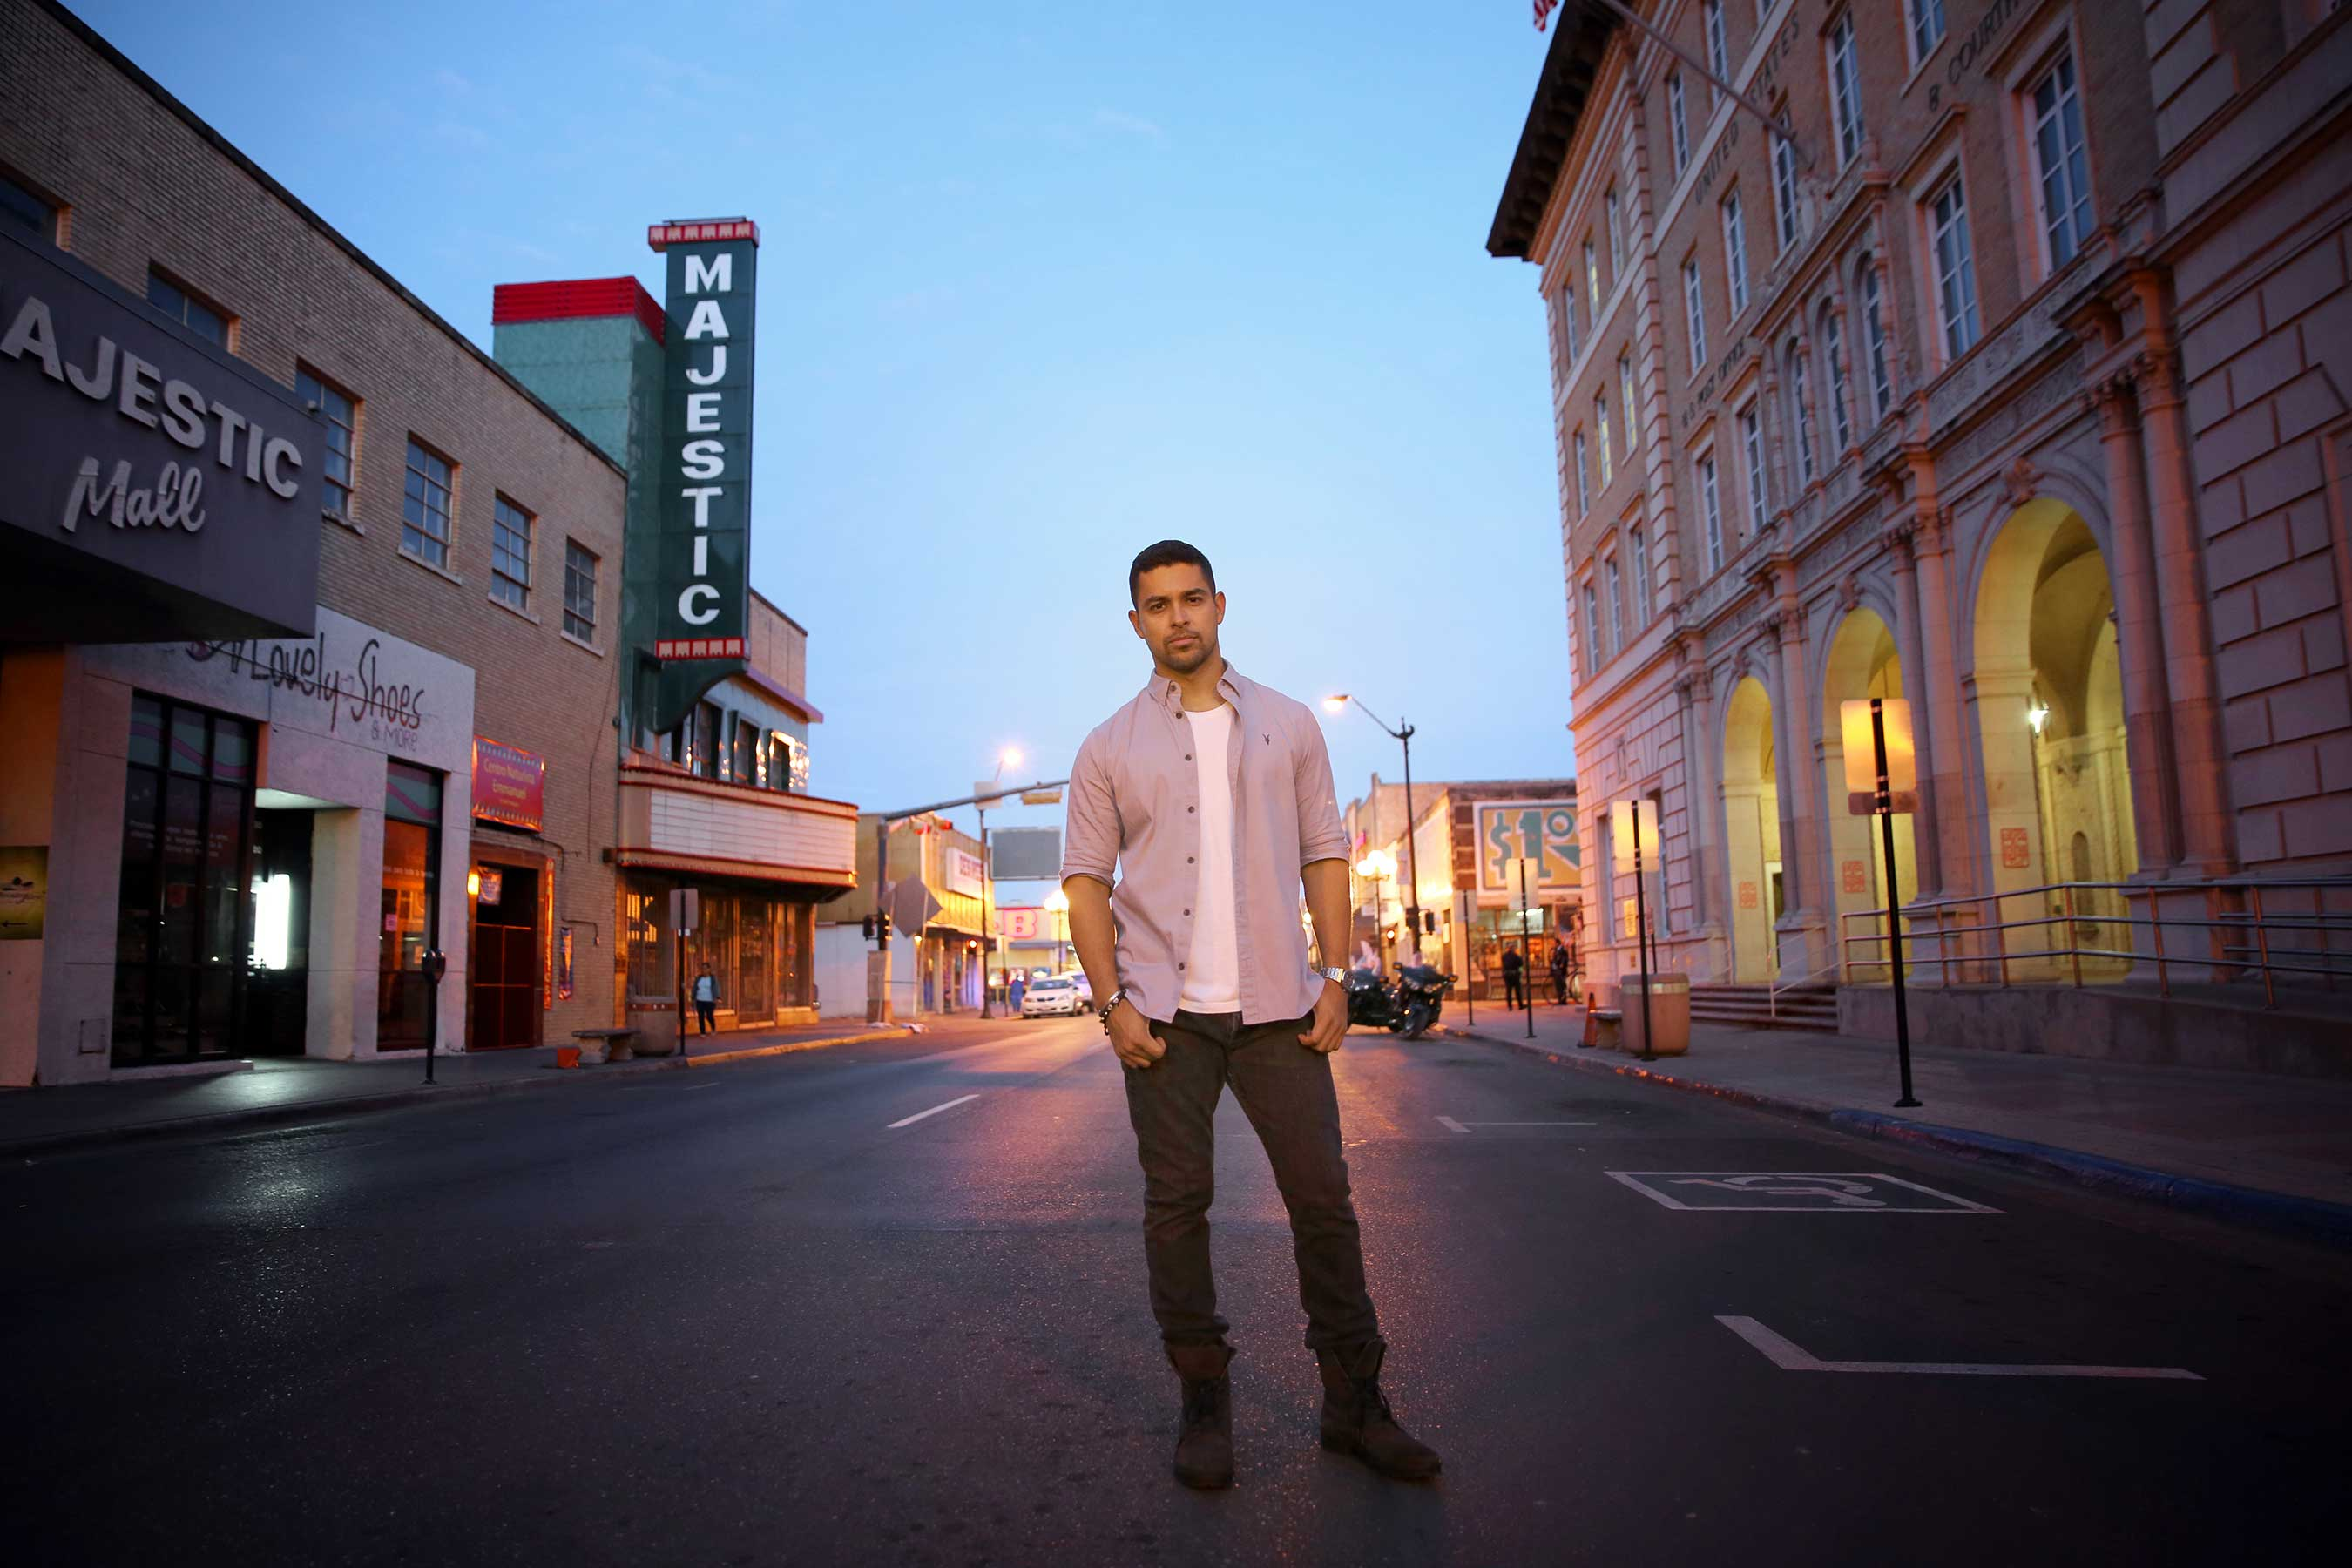 Wilmer Valderrama visits downtown Brownsville to take a stand for cultural progress in support of Johnnie Walker's Keep Walking America campaign (Rachel Murray/Getty Images).